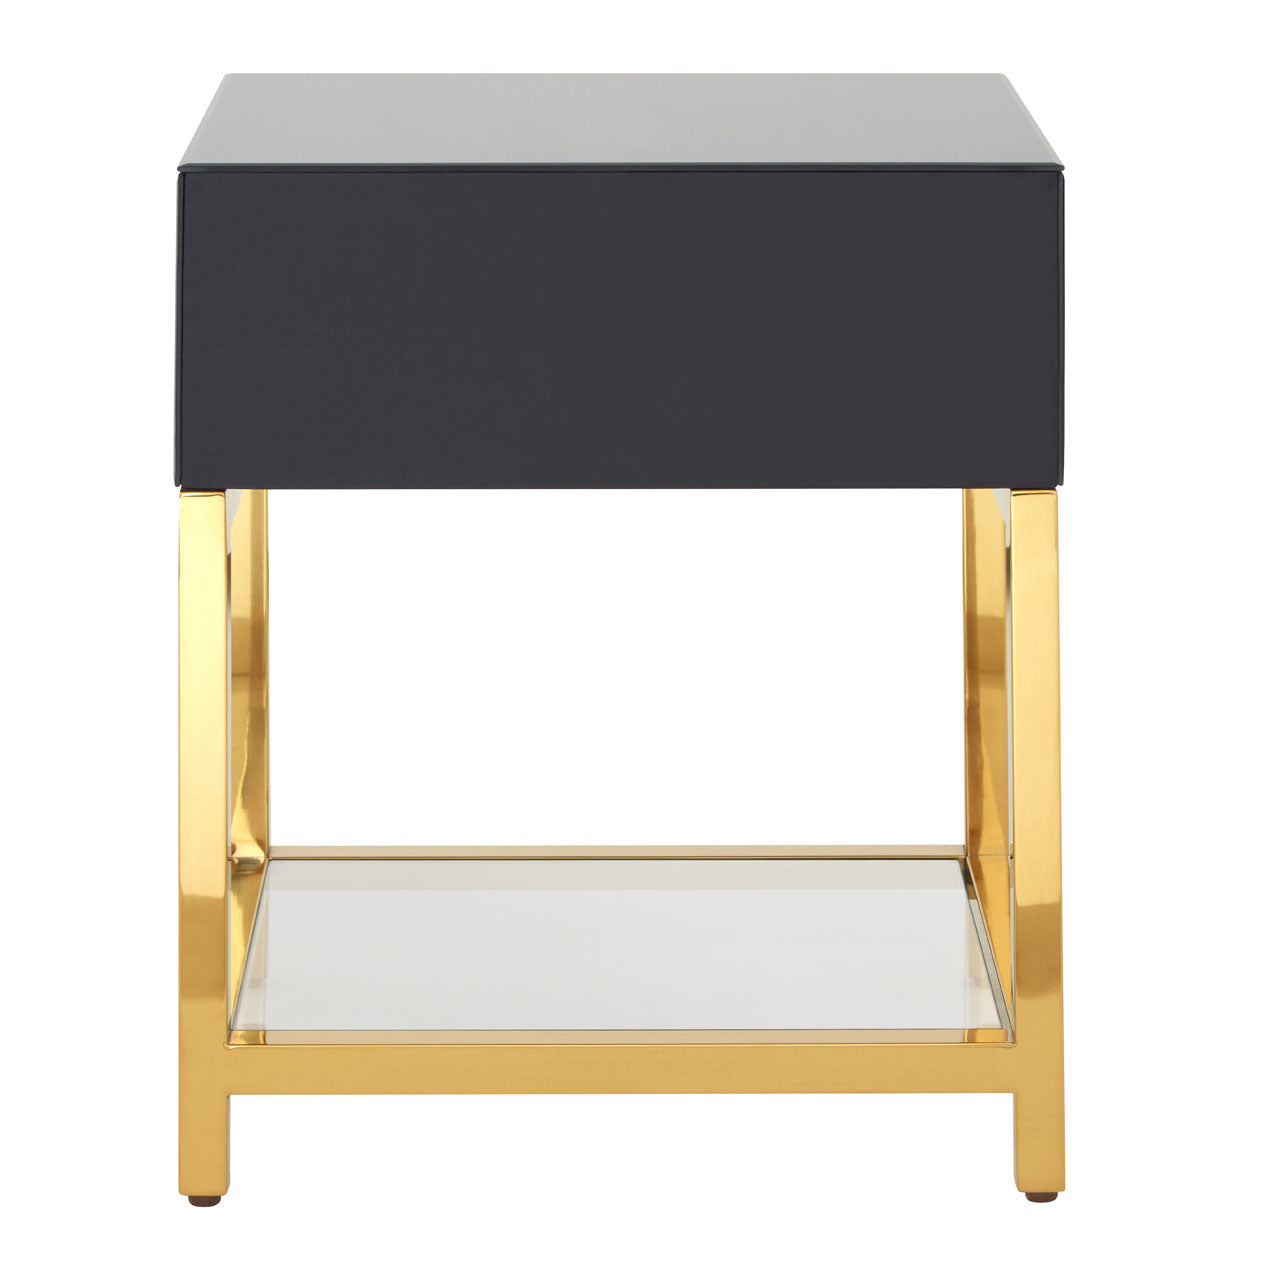 Kensington Townhouse Side Table Gloss Black and Gold